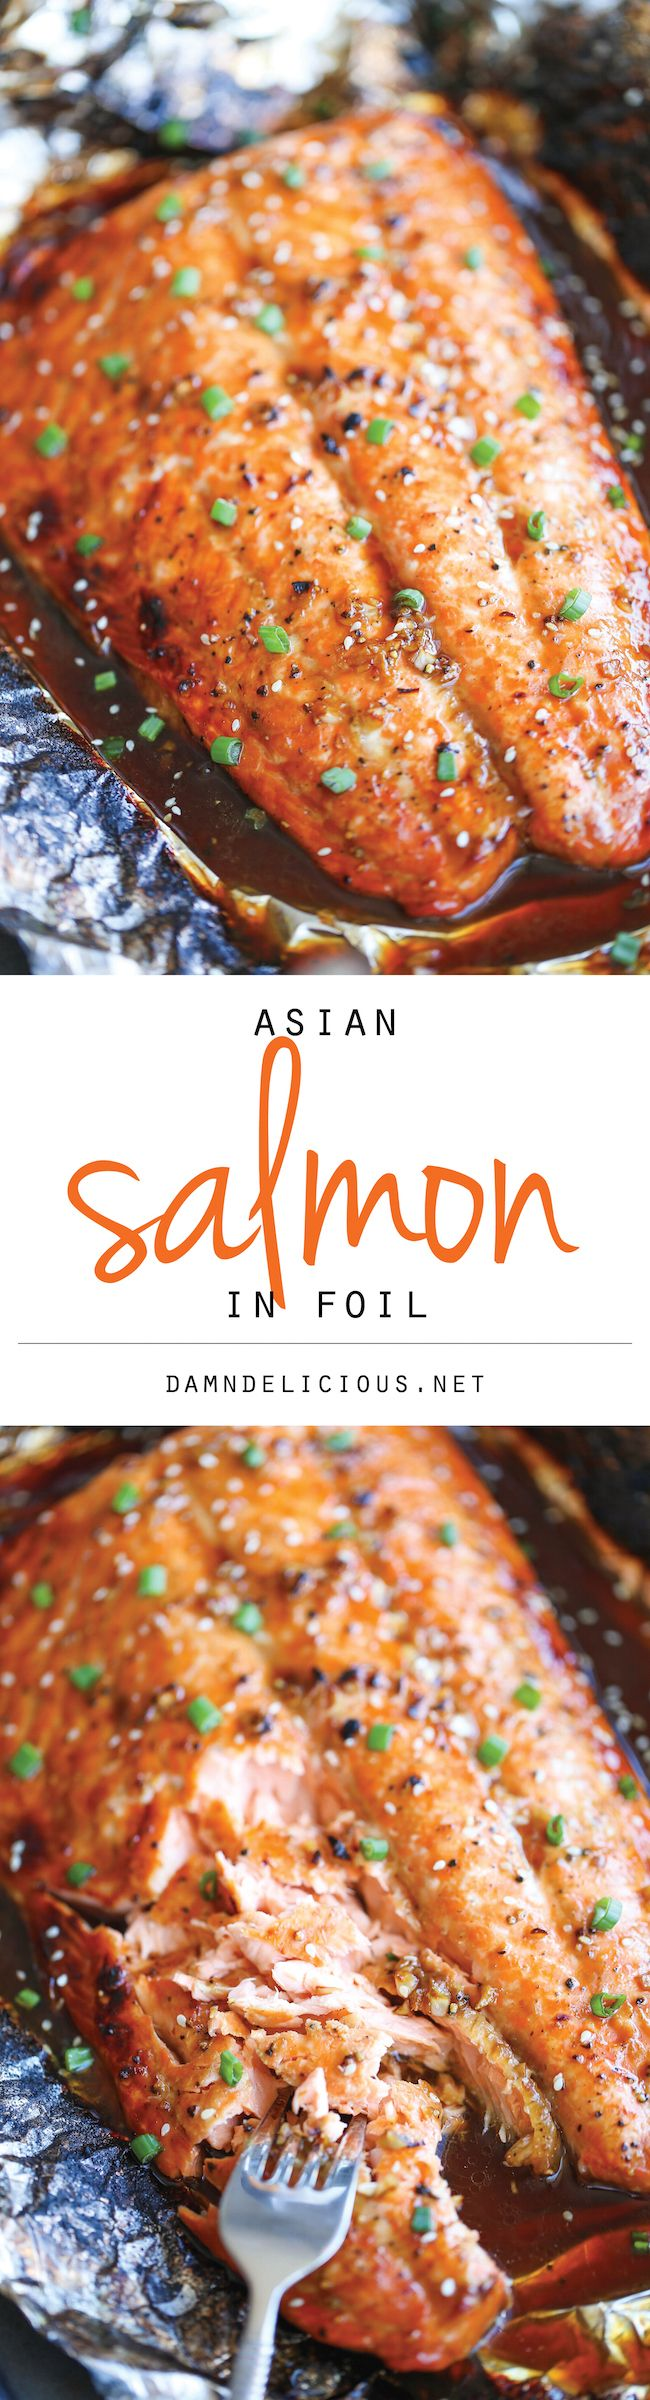 Asian Salmon in Foil  -  foil packet, honey, garlic, sesame oil and seeds, onions, veggies, ginger, spice.  sweet, hot, spicy, healthy.  want.     lj